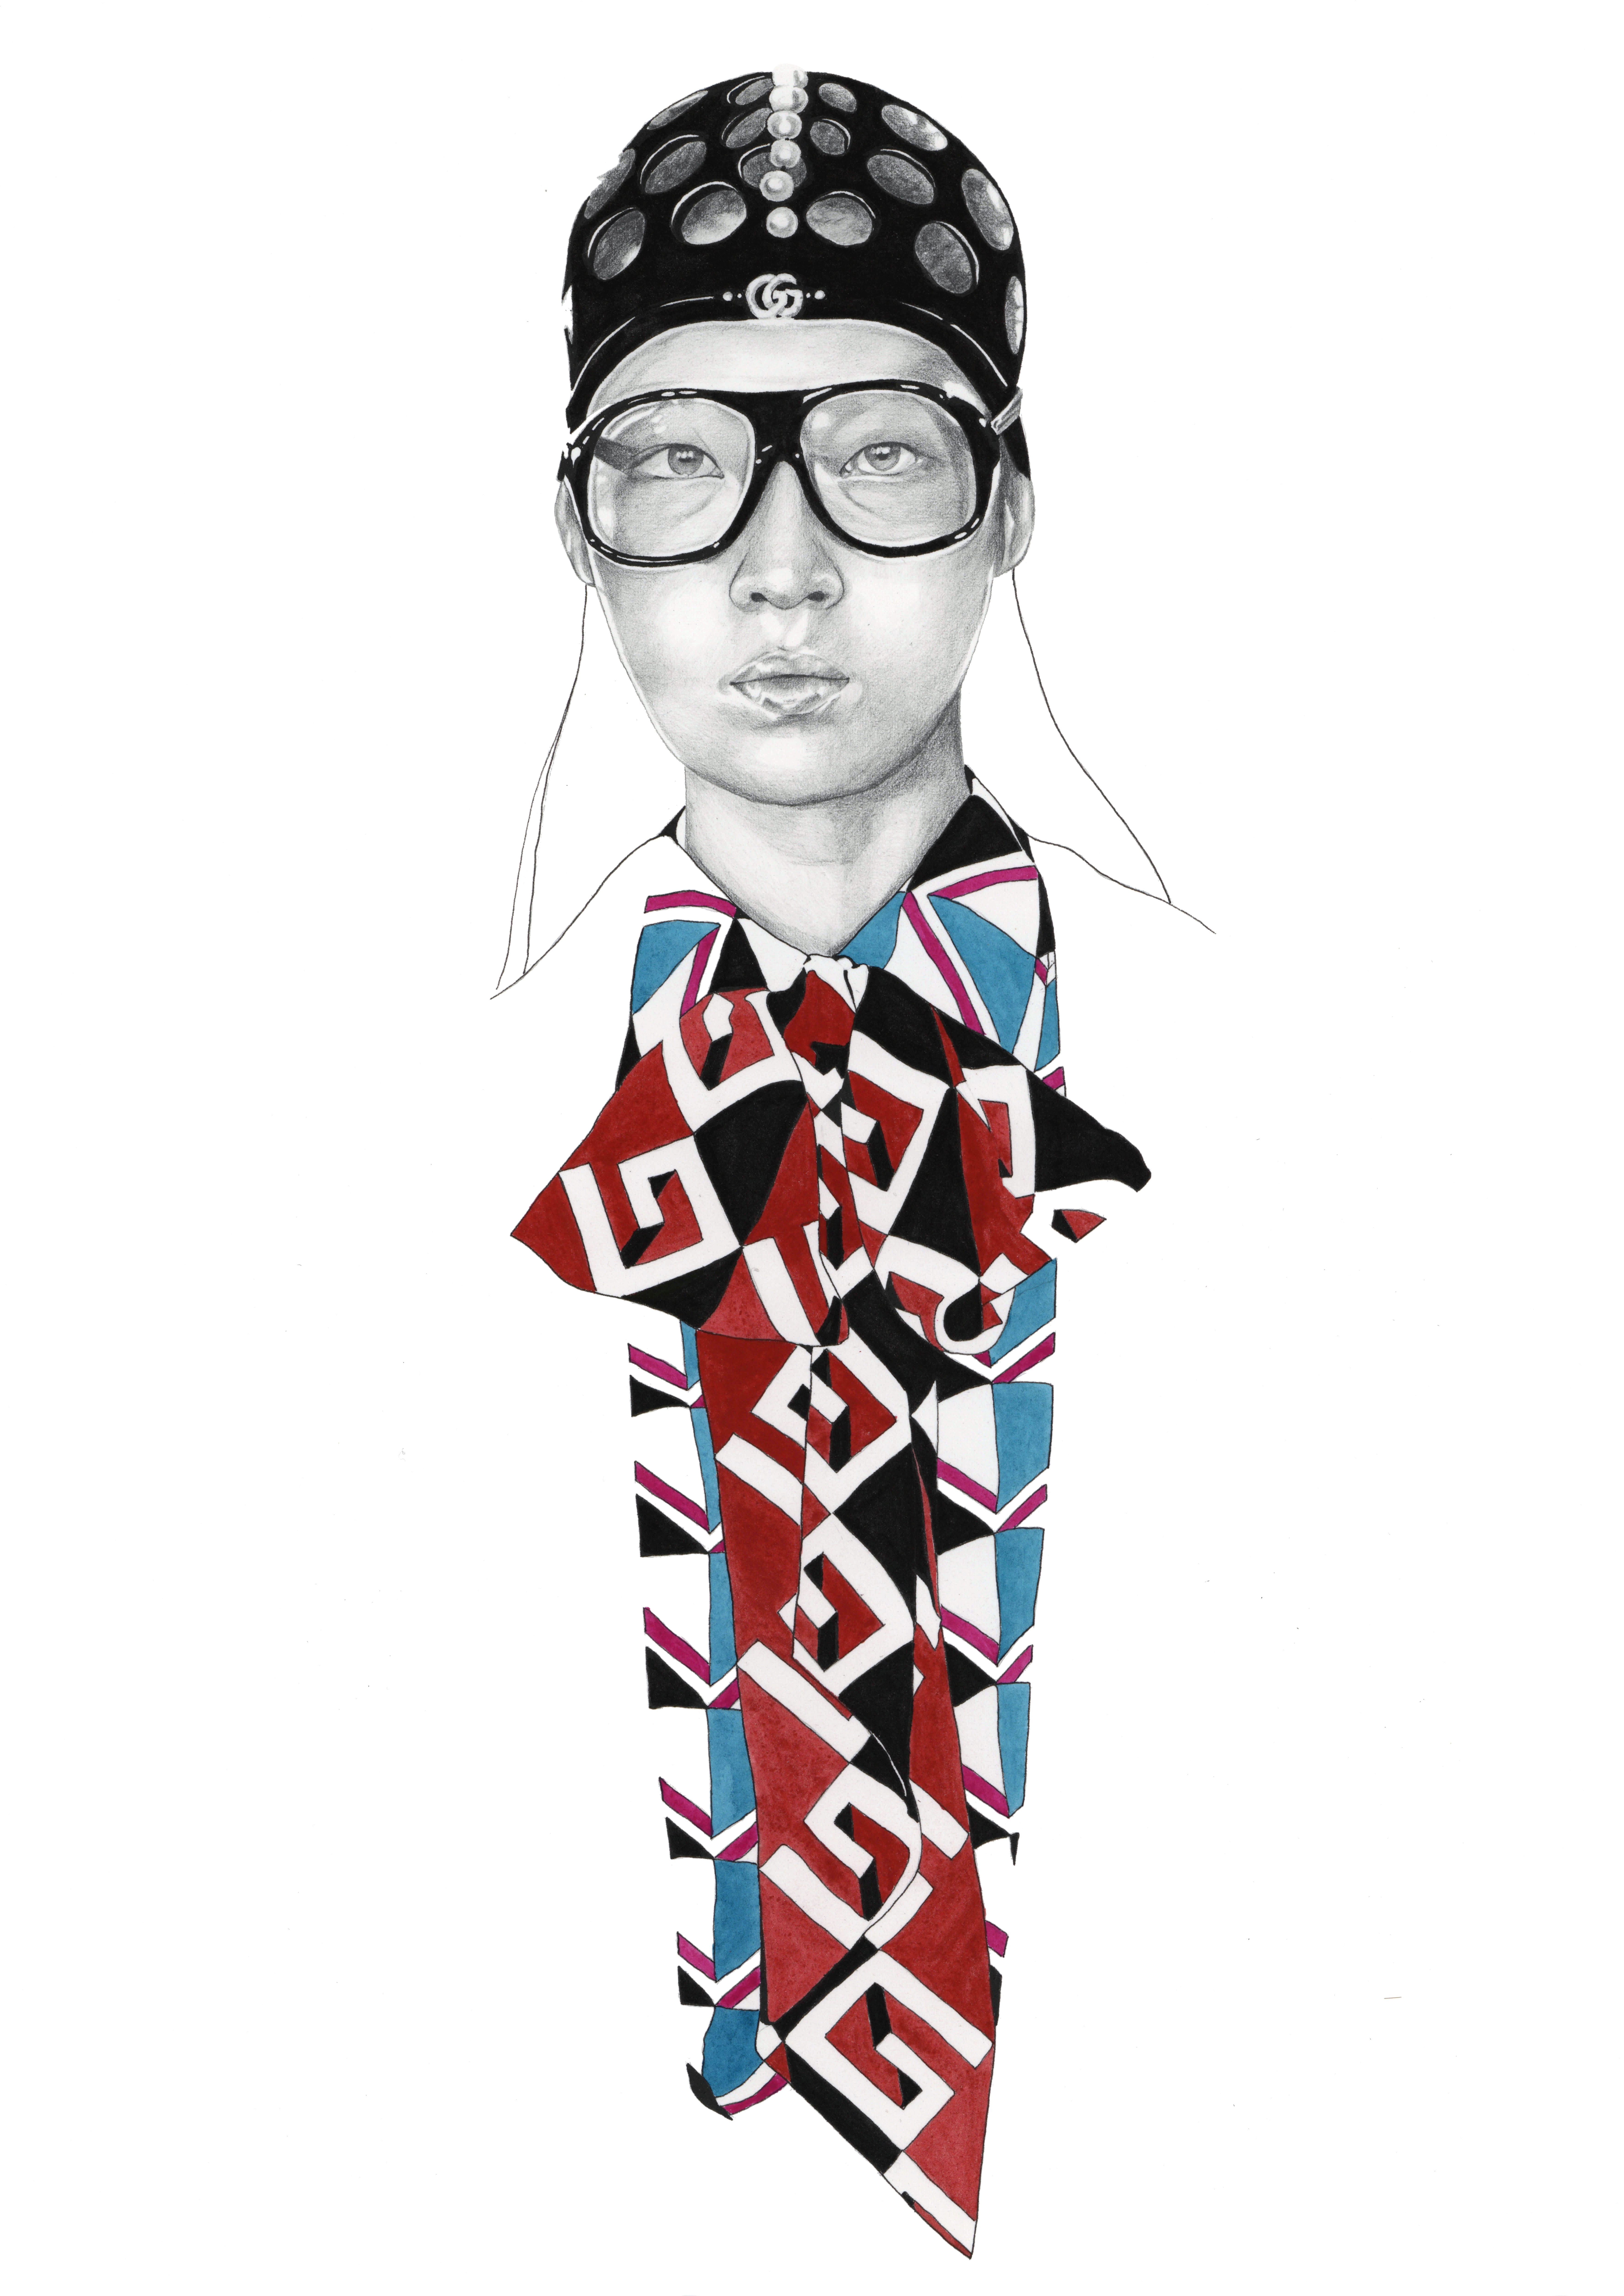 """Gucci - Resort 2018"" - graphite pencil and gouache fashion illustration by Alison Sargent"